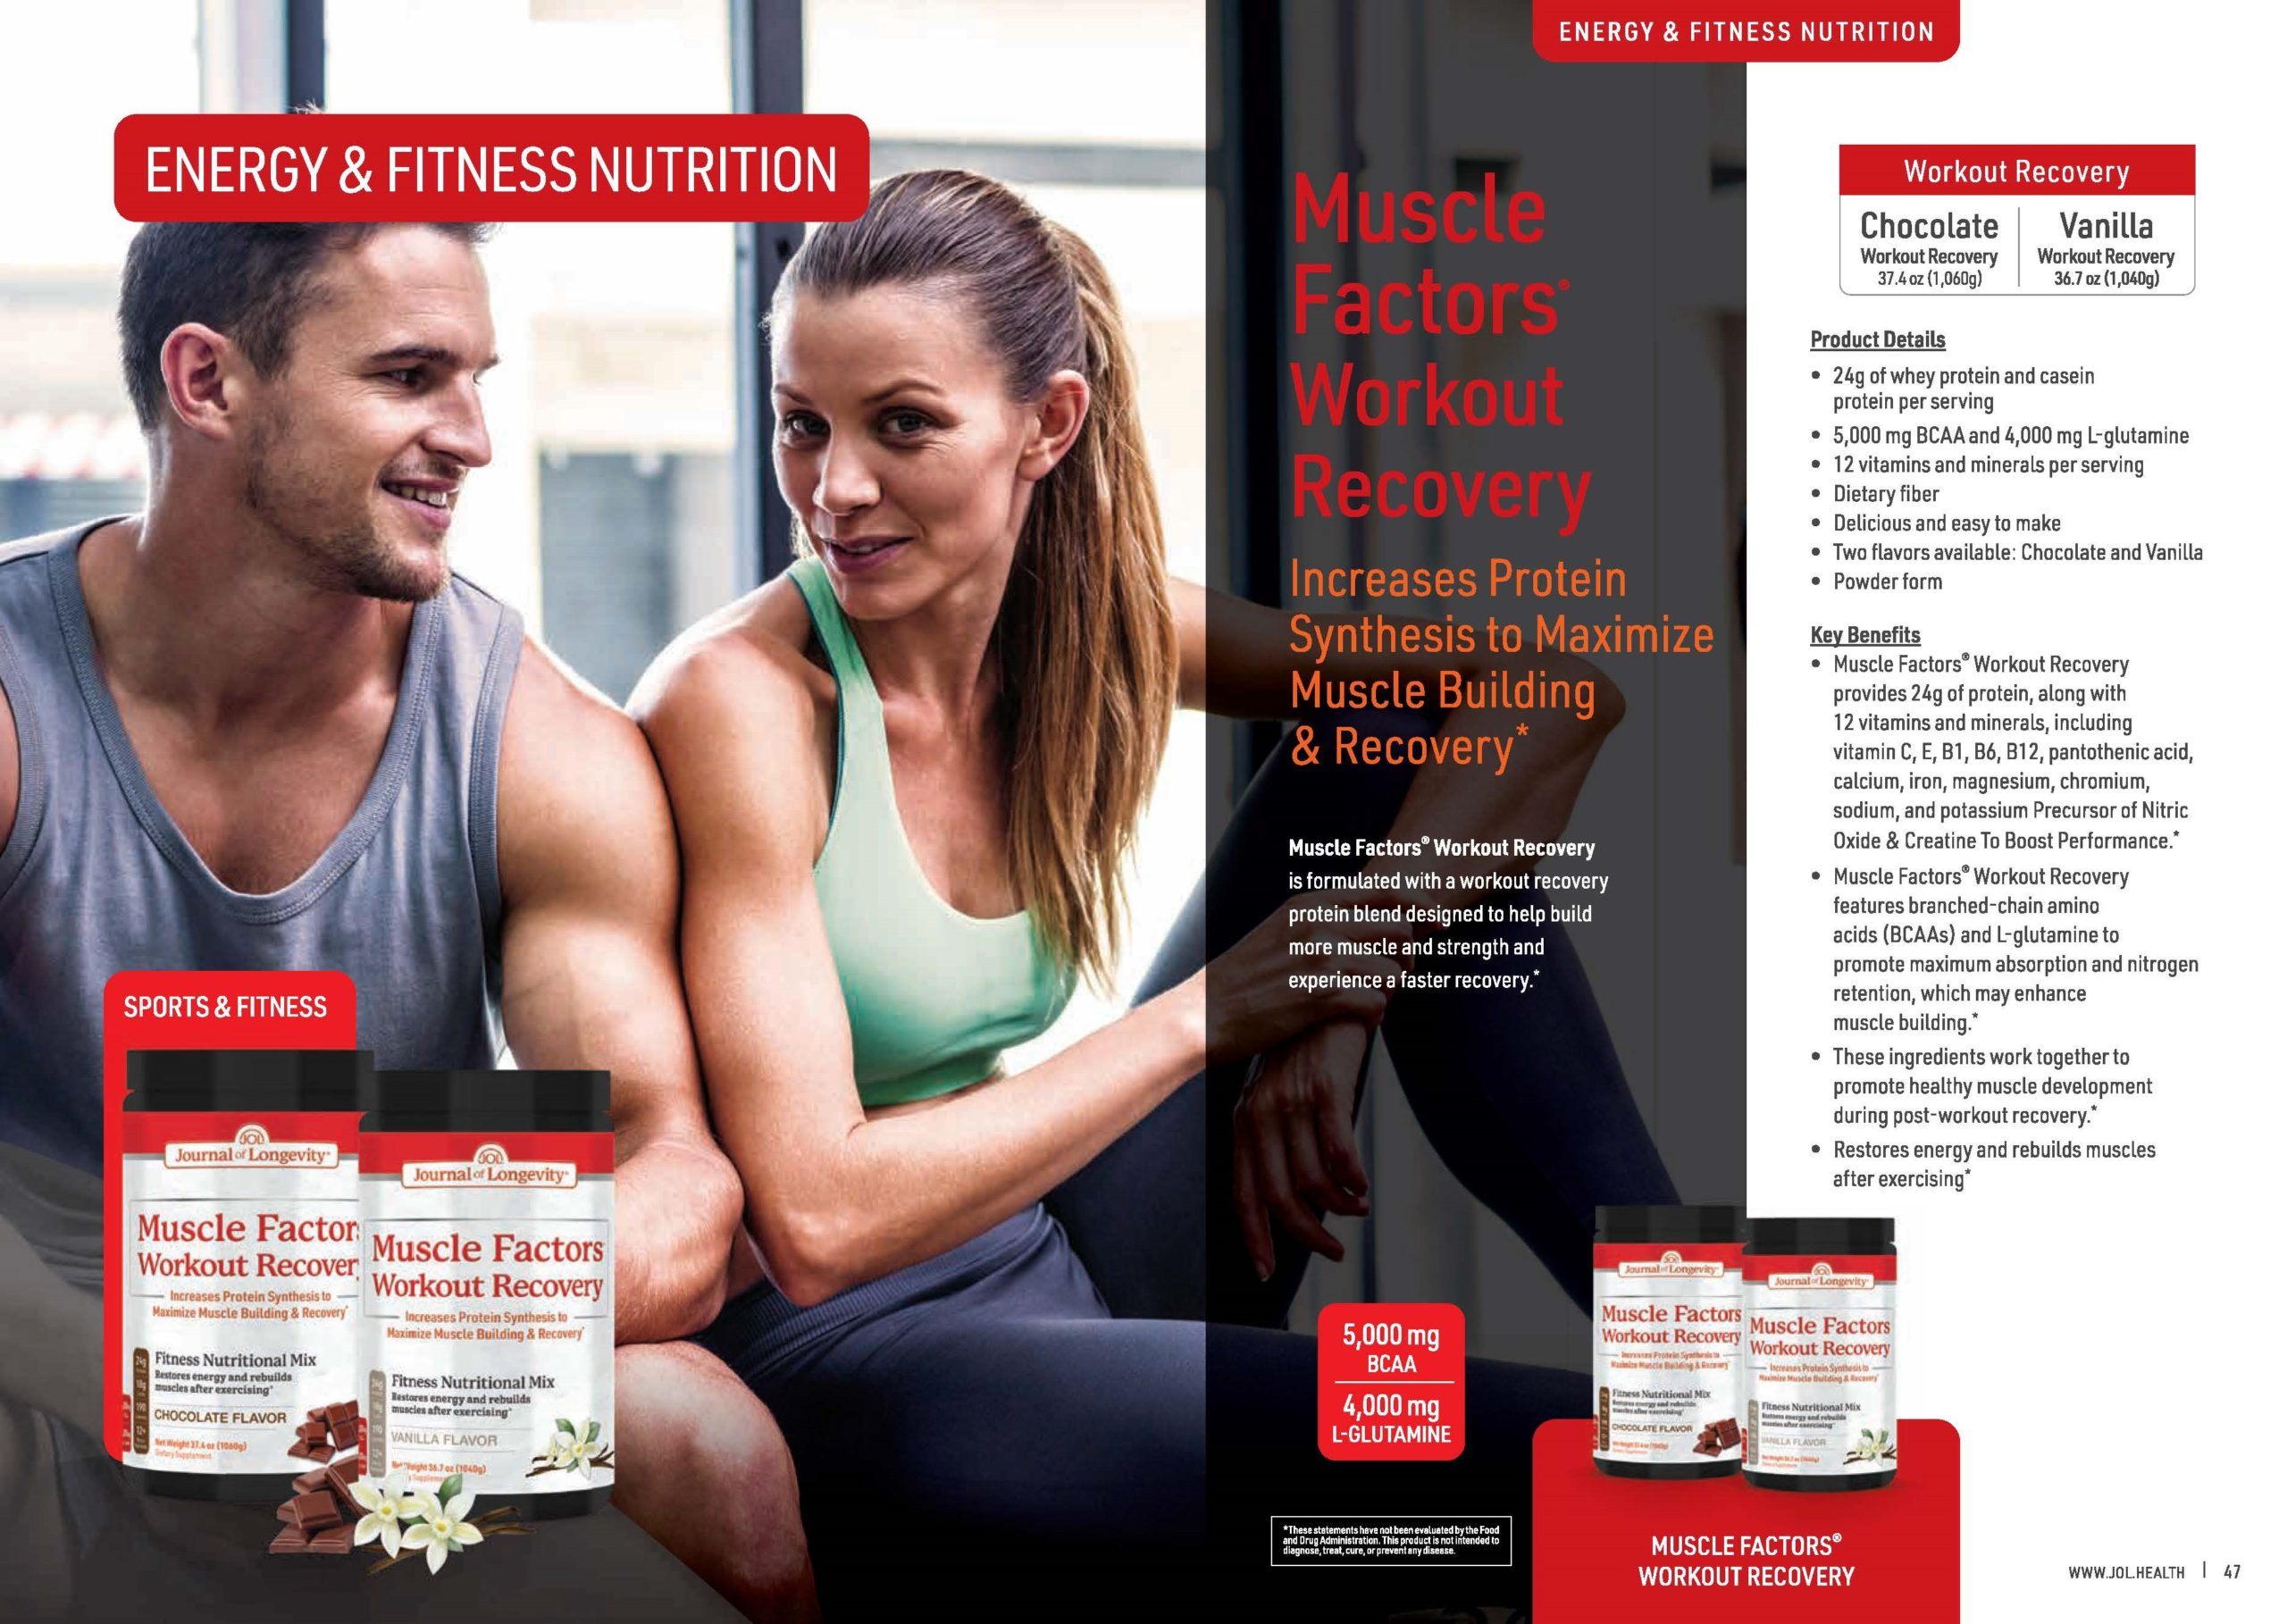 Journal of Longevity Muscle Factors Workout Recovery Whey Protein Powder - Sports, Energy & Fitness